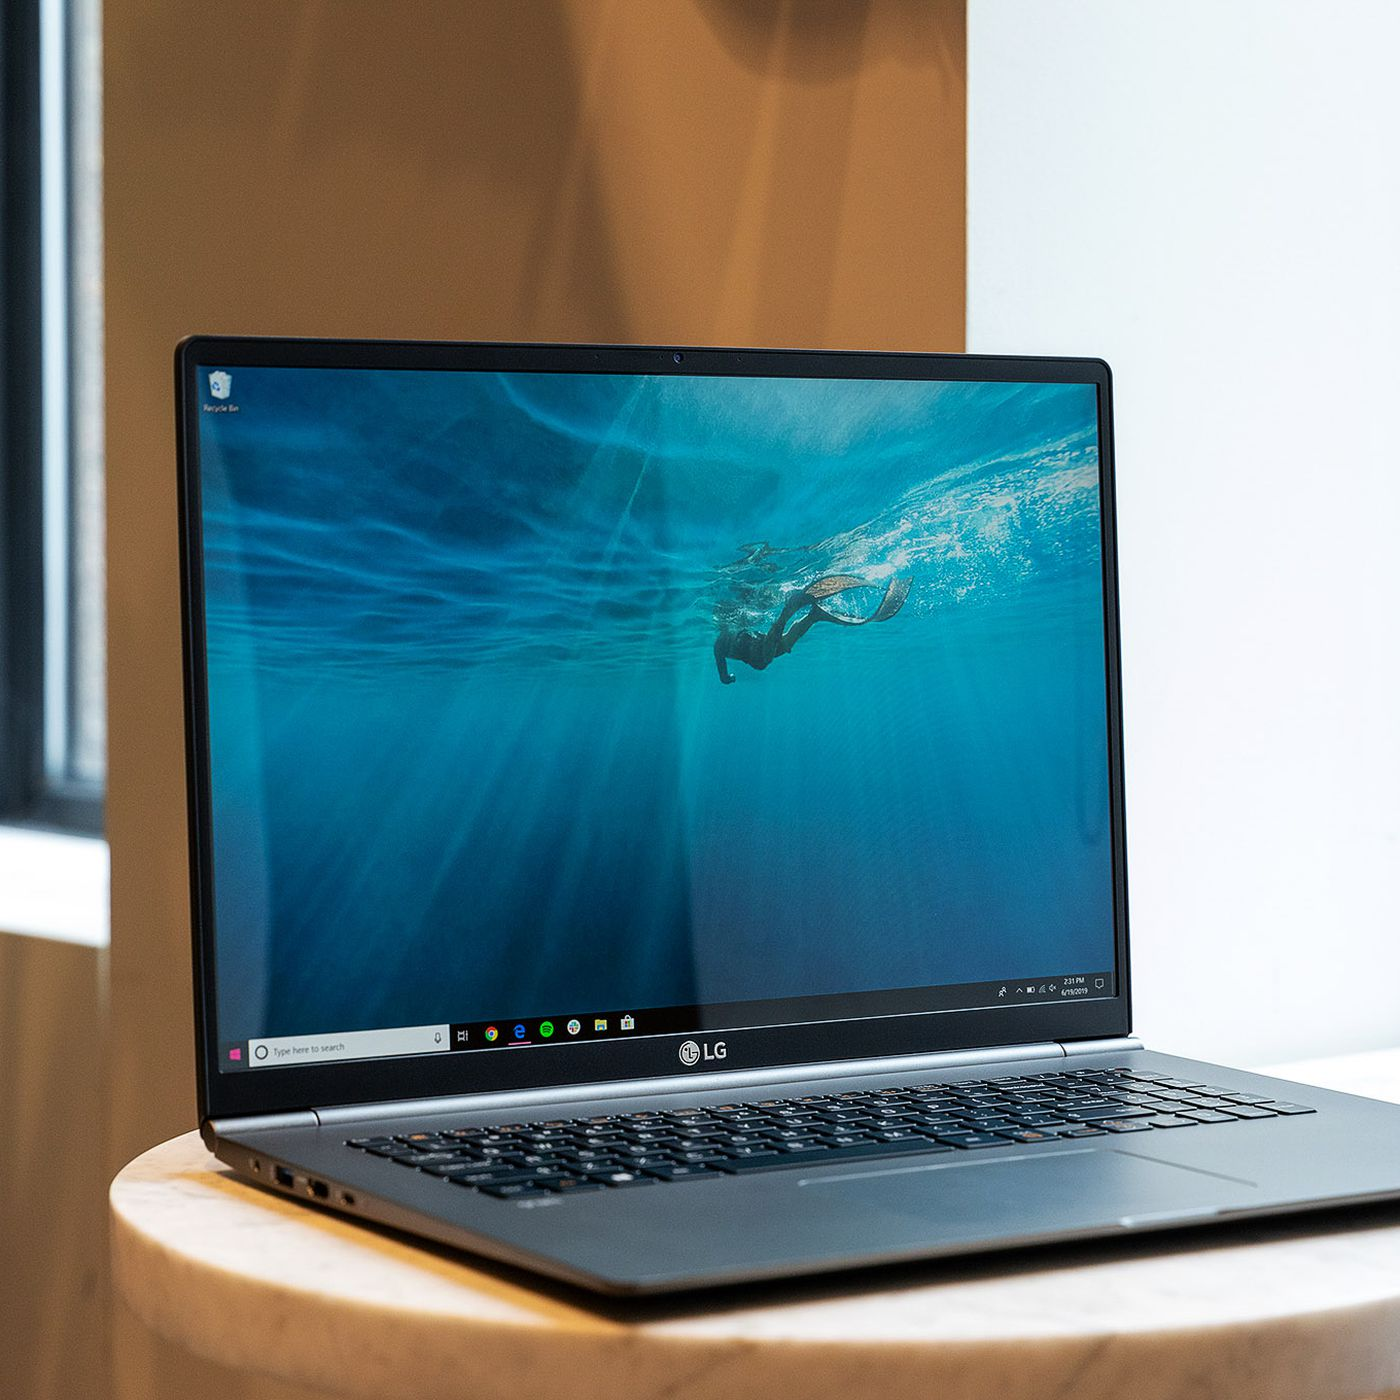 Best Laptop for Scanning Photos